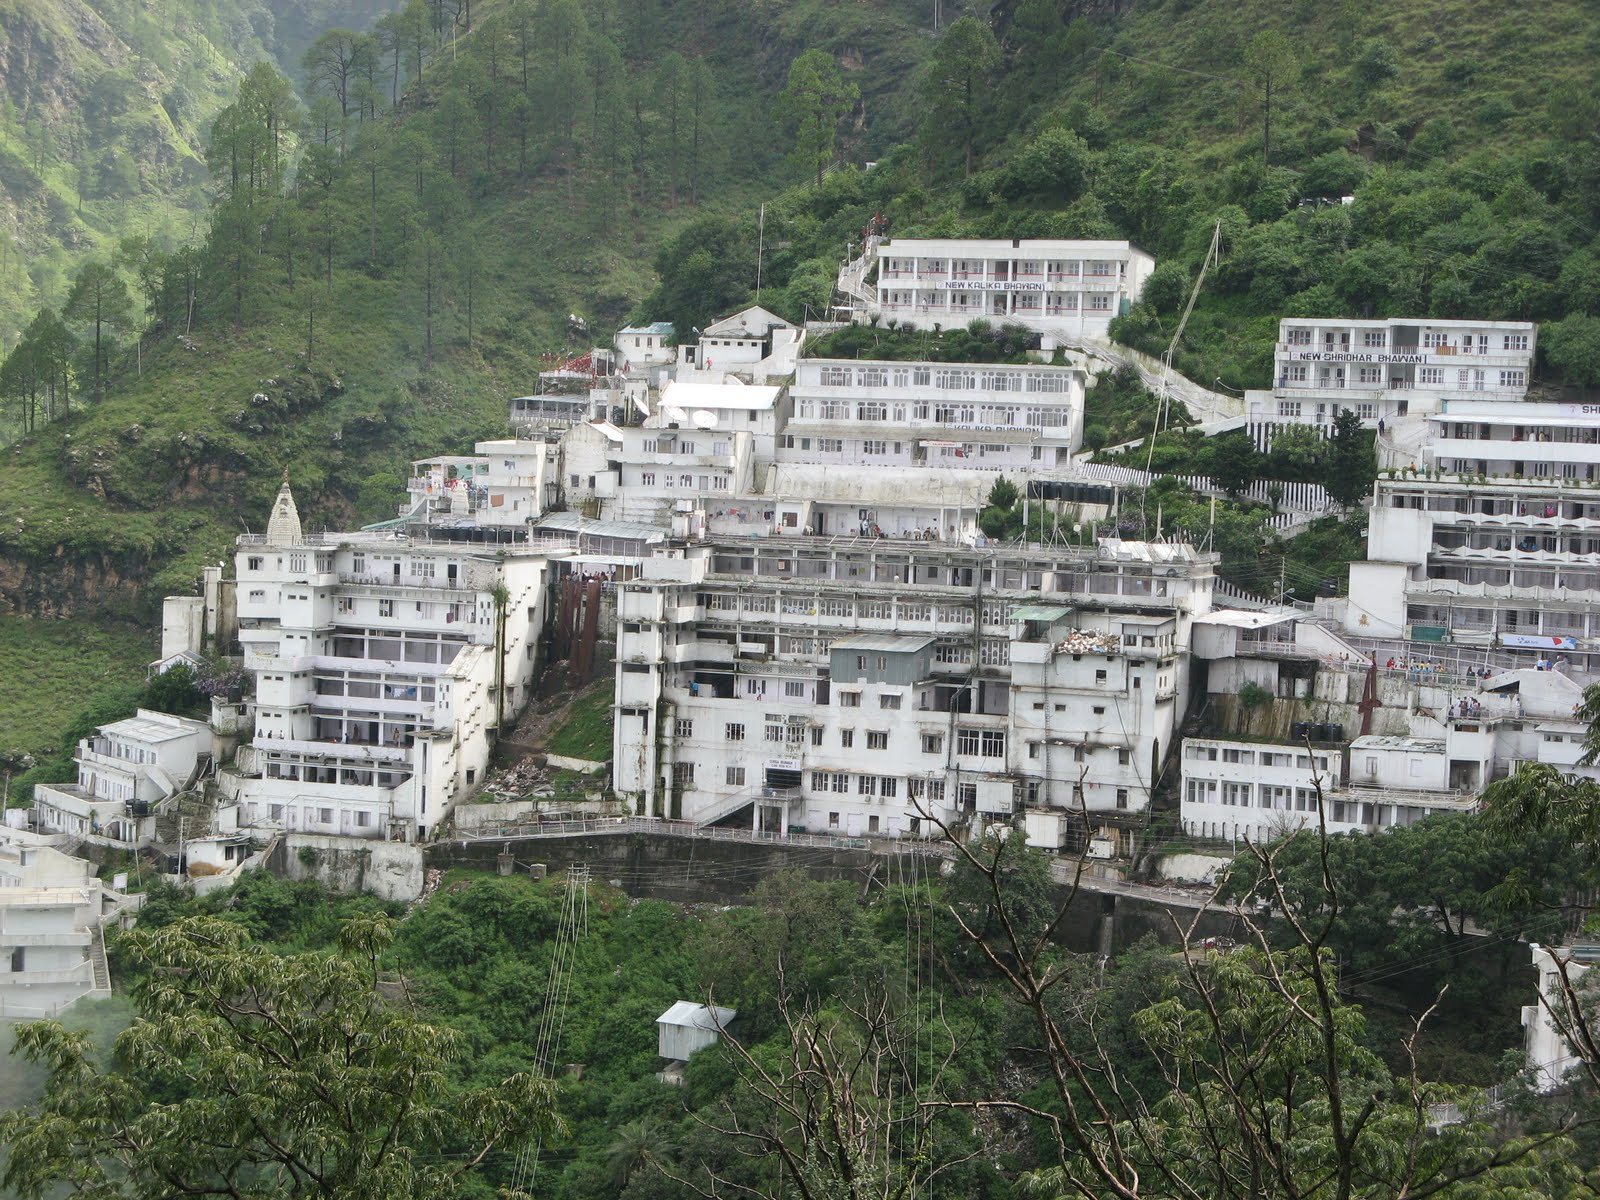 vaishno devi helicopter package with Mata Vaishno Devi Temple In Jammu on Shree Kedarnath Badrinath Yatra moreover Mata Vaishno Devi Helicopter Package Ex Katra together with Shikhar Nature Resort Uttarkashi as well Mata Vaishno Devi Package By Helicopter besides Vaishno Devi Yatra With Offer And Benefits.